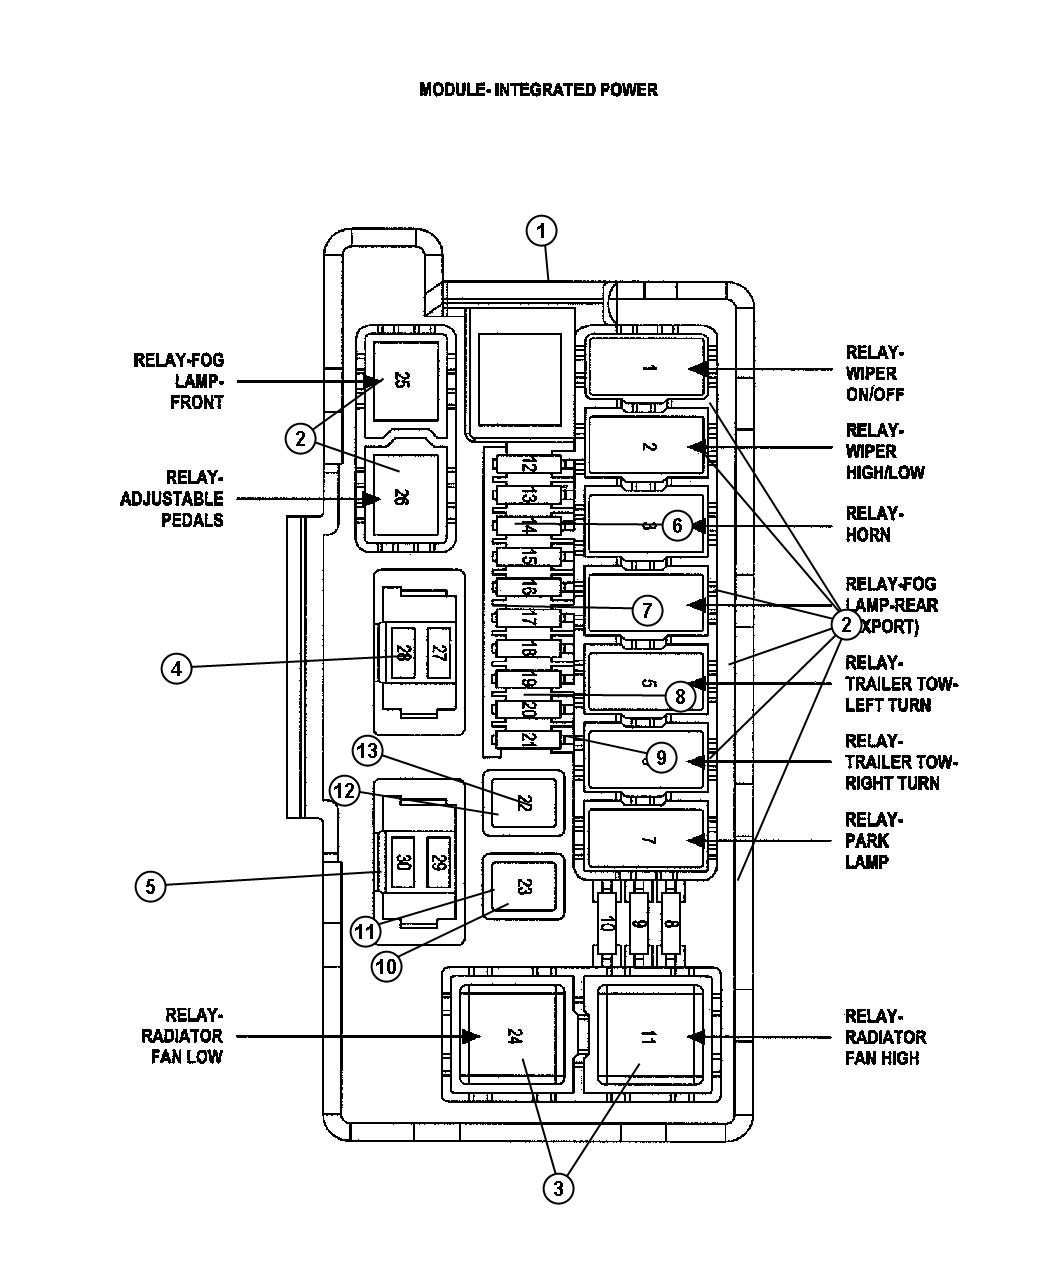 2006 Jeep Fuse Diagram Wiring Diagrams For 2002 Grand Cherokee Liberty Library Magnum